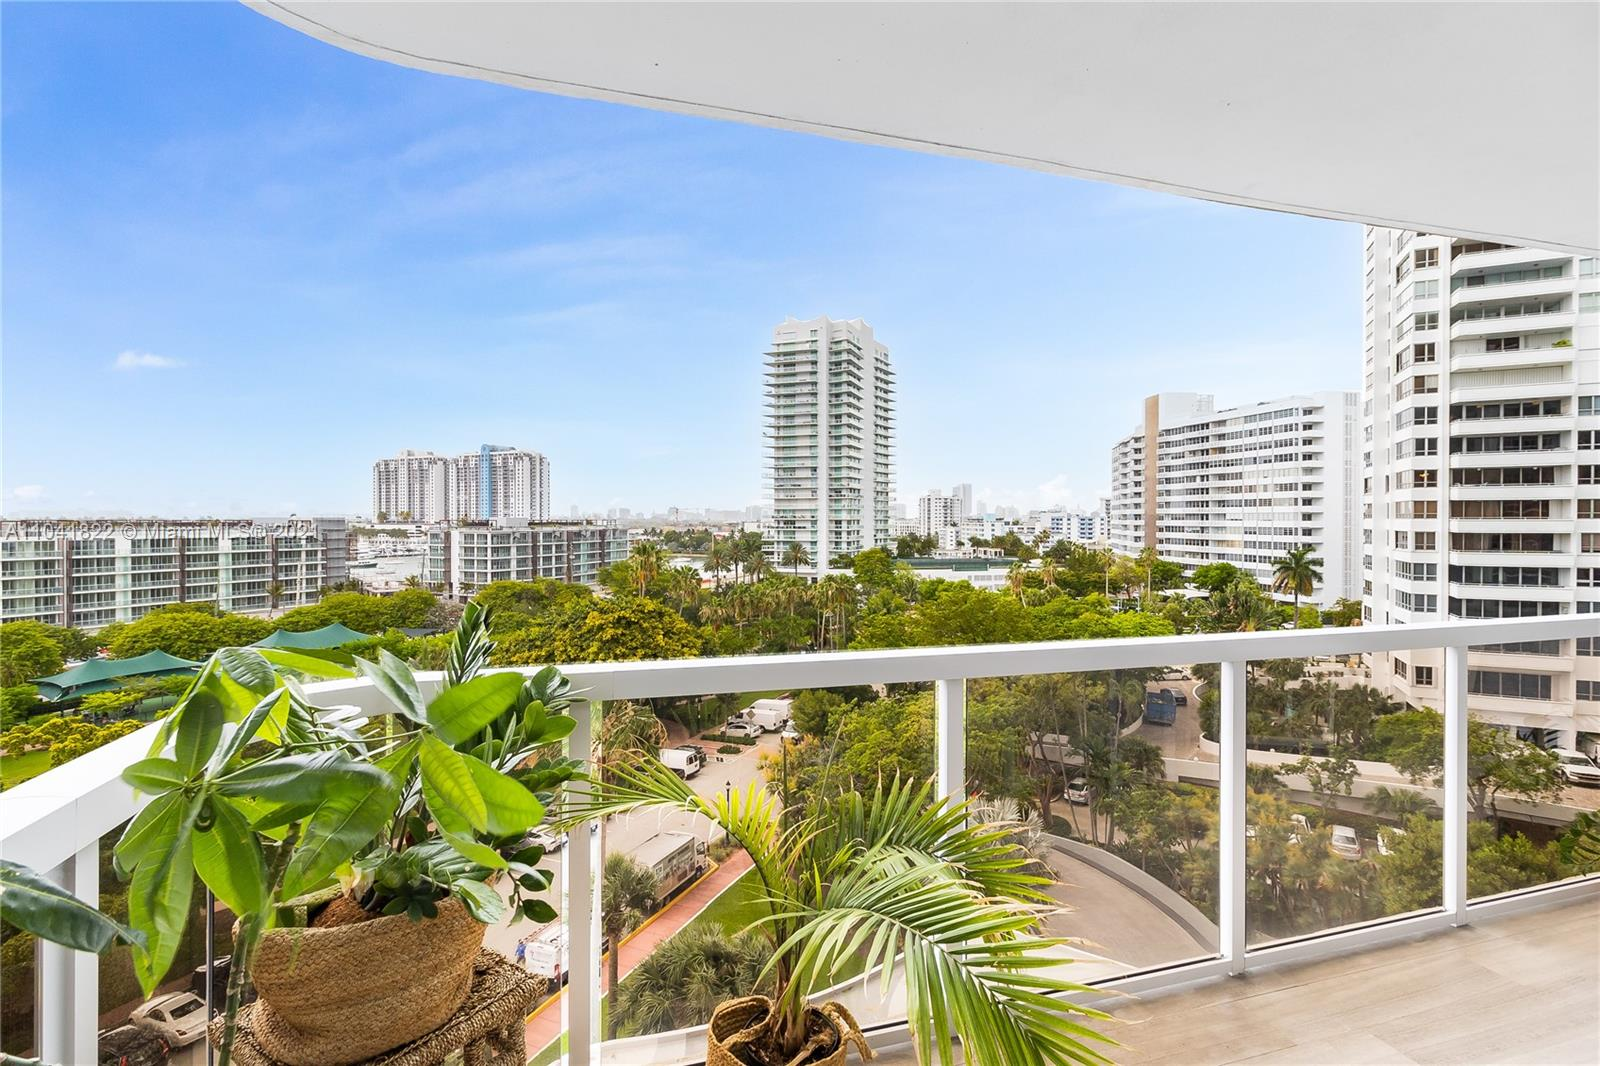 Opportunity knocks with the lowest priced 3/3 family home on the Venetian Isles. If you have been looking for a move-in ready space to entertain or work from home, 9 Island delivers! Feels like a house with no shared walls and wide spaces framed by floor to ceiling windows. Two 21 foot terraces are perfect for fresh air or al fresco dining. Wide-plank floors, modern eat-in kitchen, double door entry, full-sized laundry room and generous closets to keep your organized. Lobby, hallways and amenities have all been updated with a captivating resort vibe. Bayfront pool, community marina, outdoor grills, 3 hot tubs, professional health club, resident lounge and on-site management. Under $669/sf to live steps to Standard, Sunset Harbour and Lincoln Rd. Ideal location to commute to Brickell